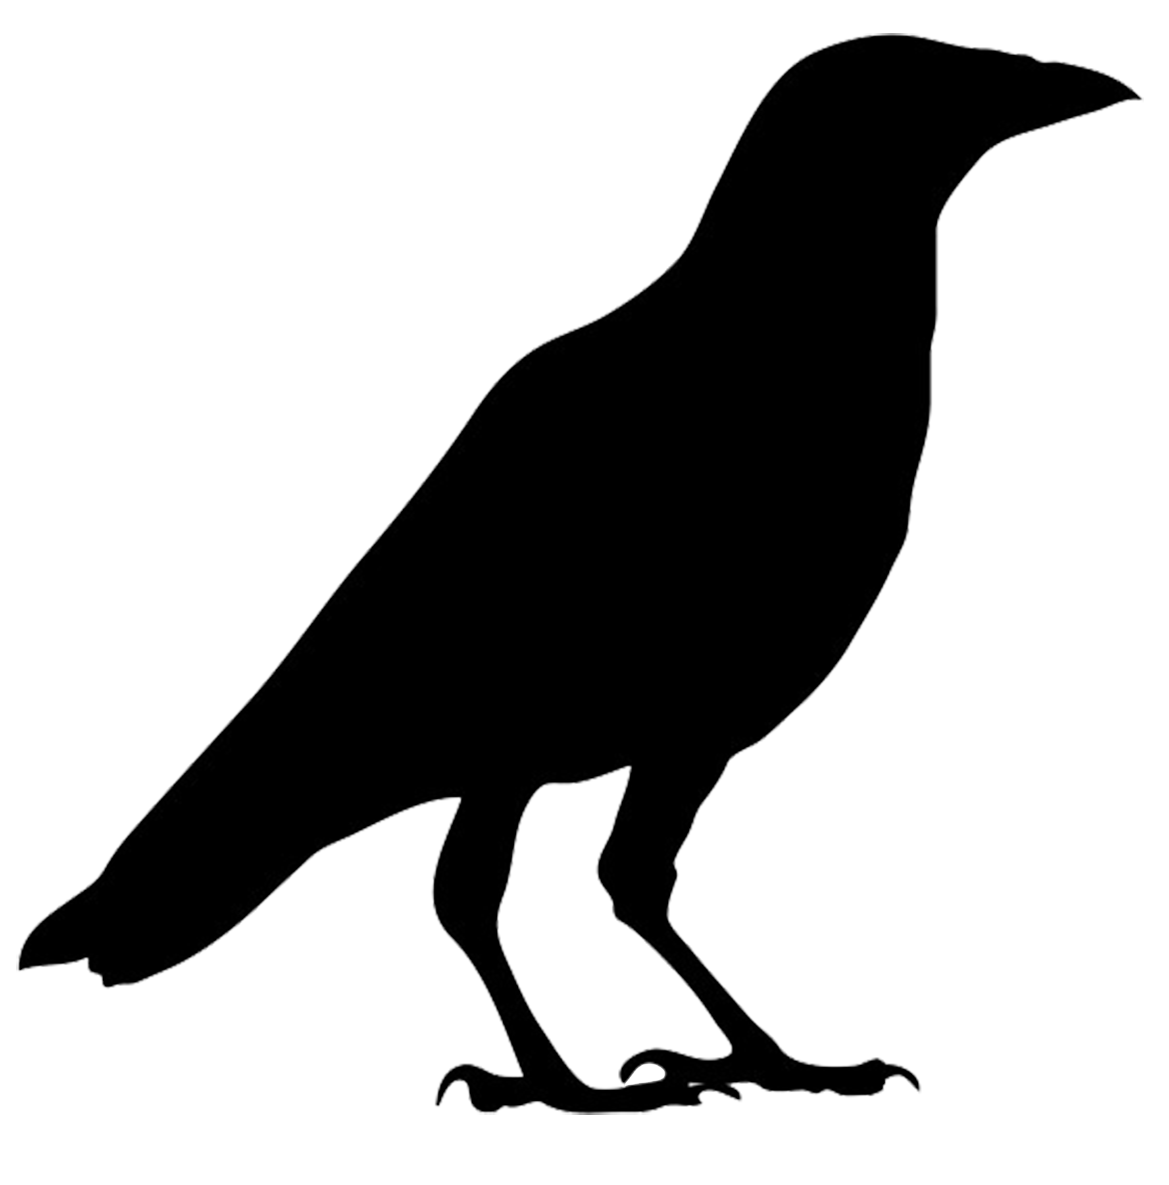 Free Raven Silhouette Cliparts, Download Free Clip Art, Free ... graphic freeuse library